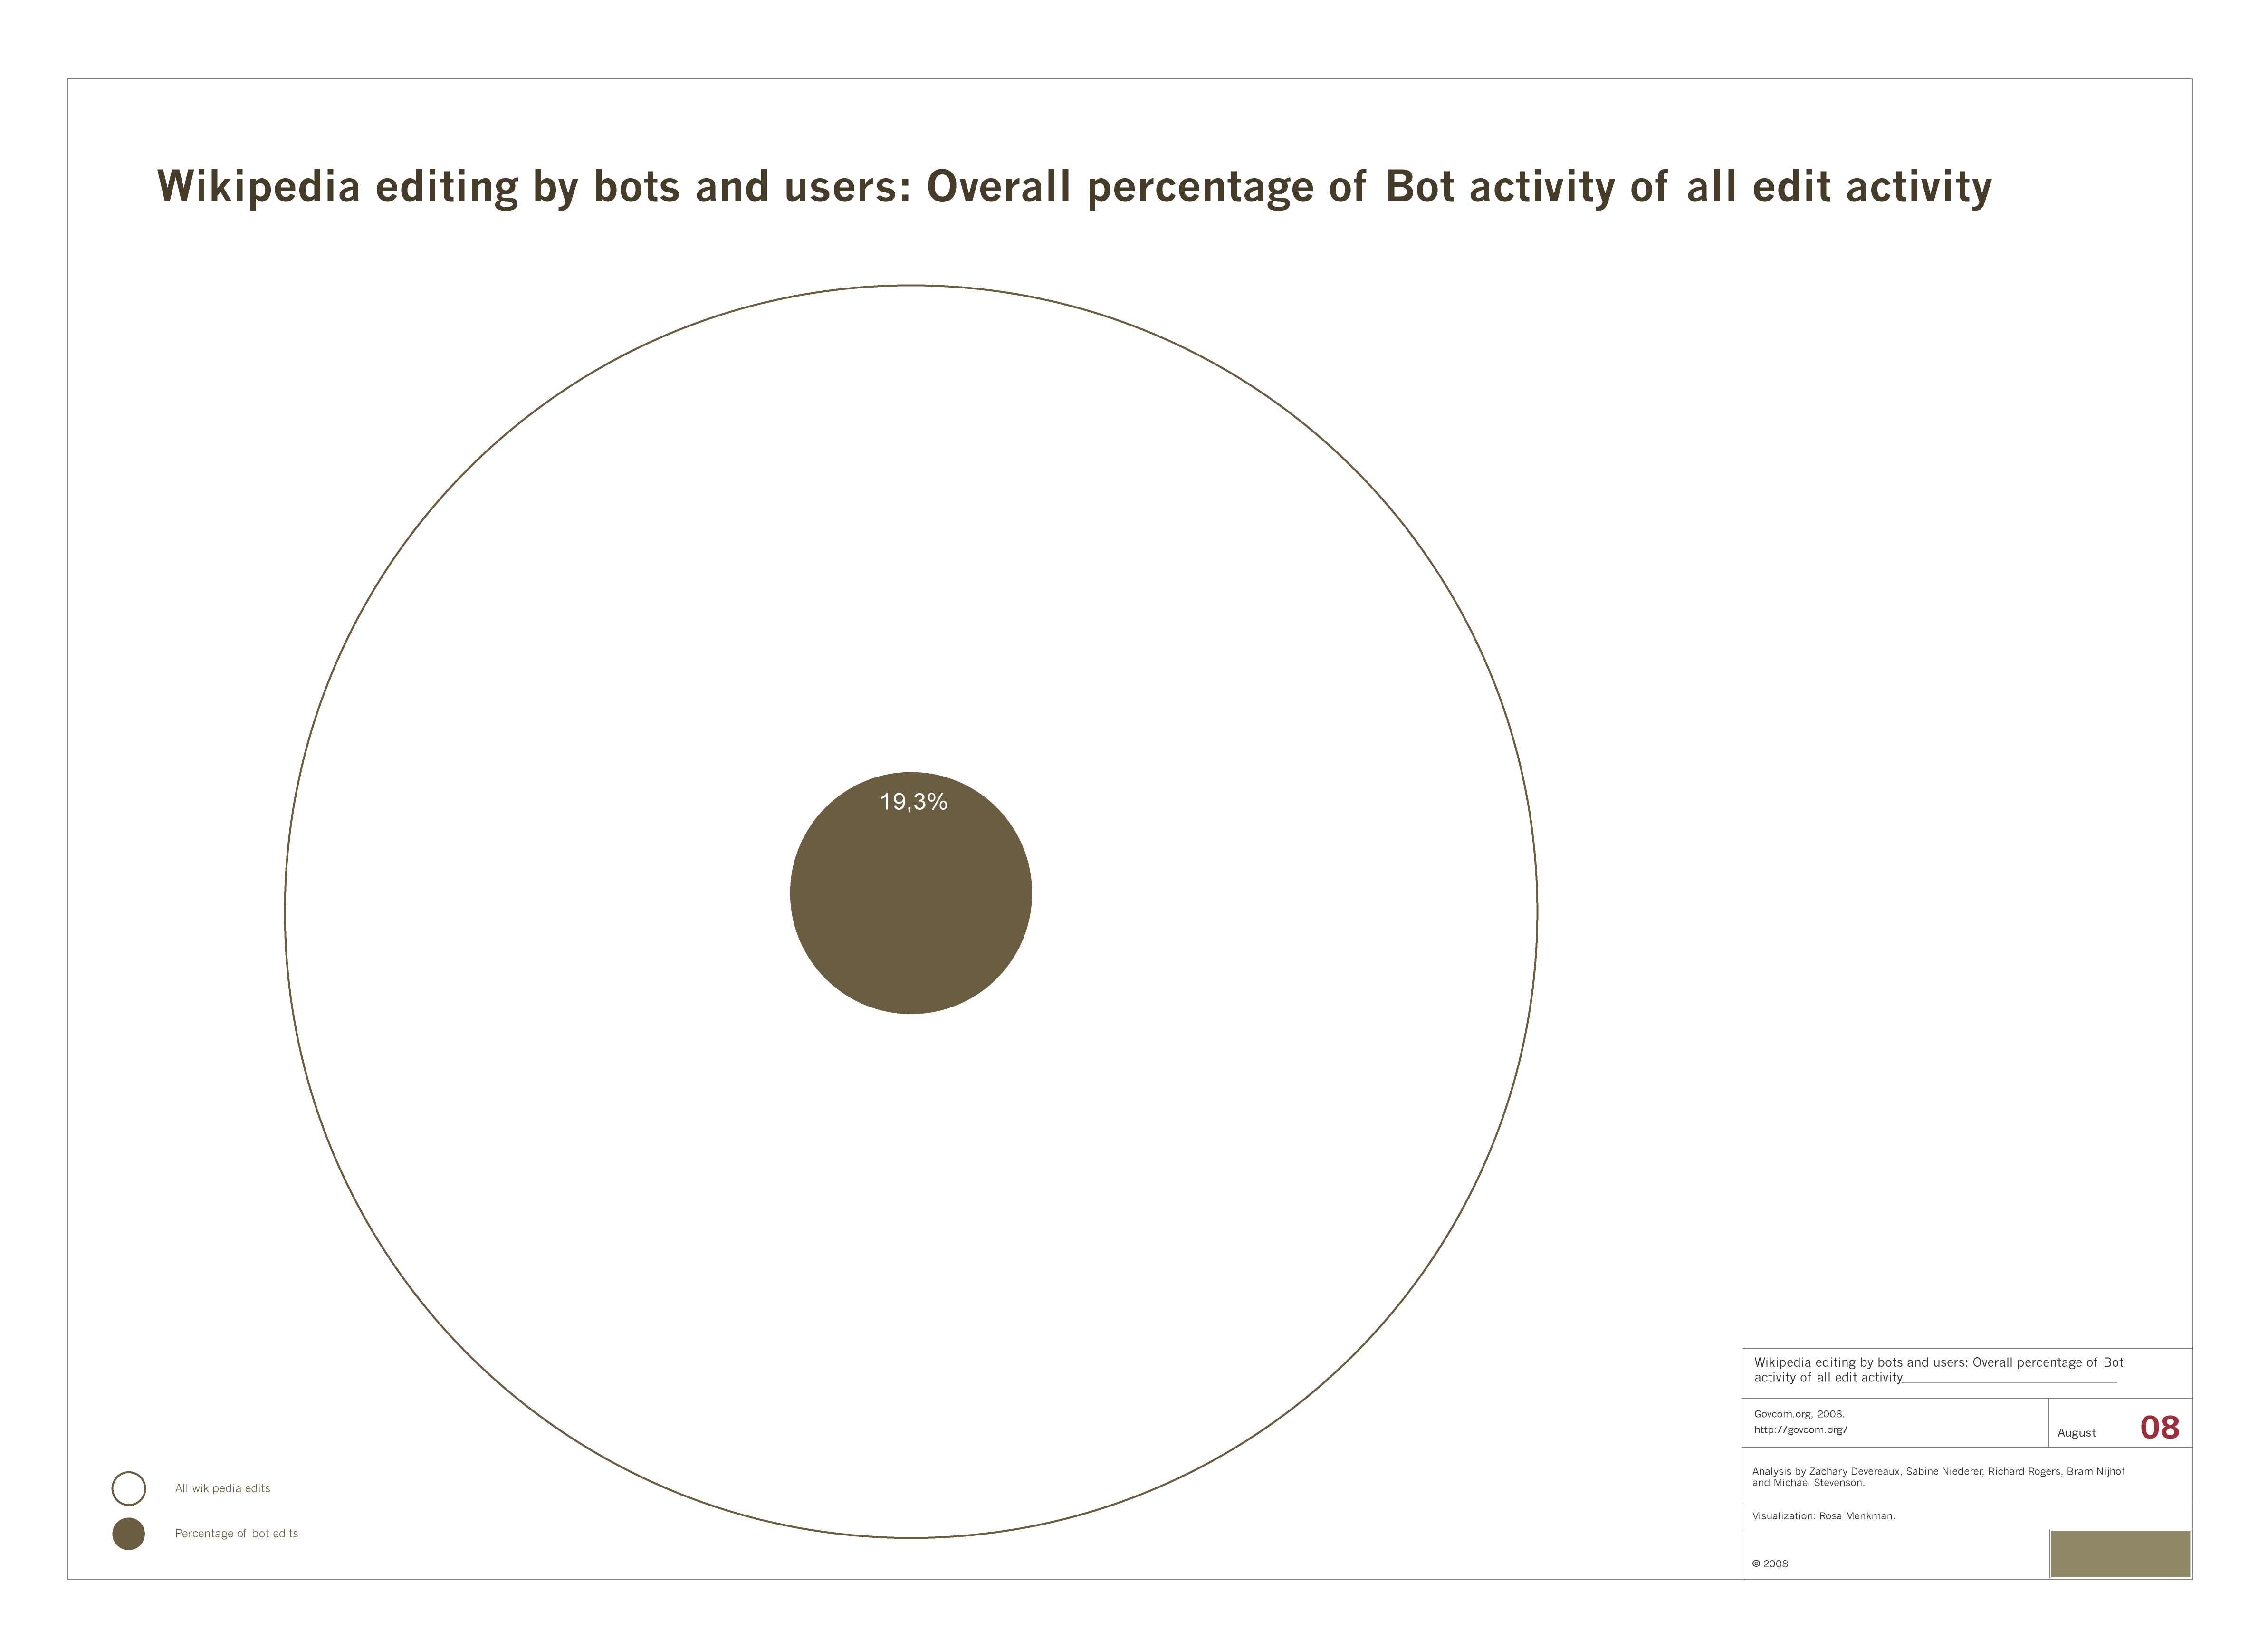 Wikipedia_editing_by_bots_and_users_Overall_percentage_of_Bot_activity_of_all_activity.png